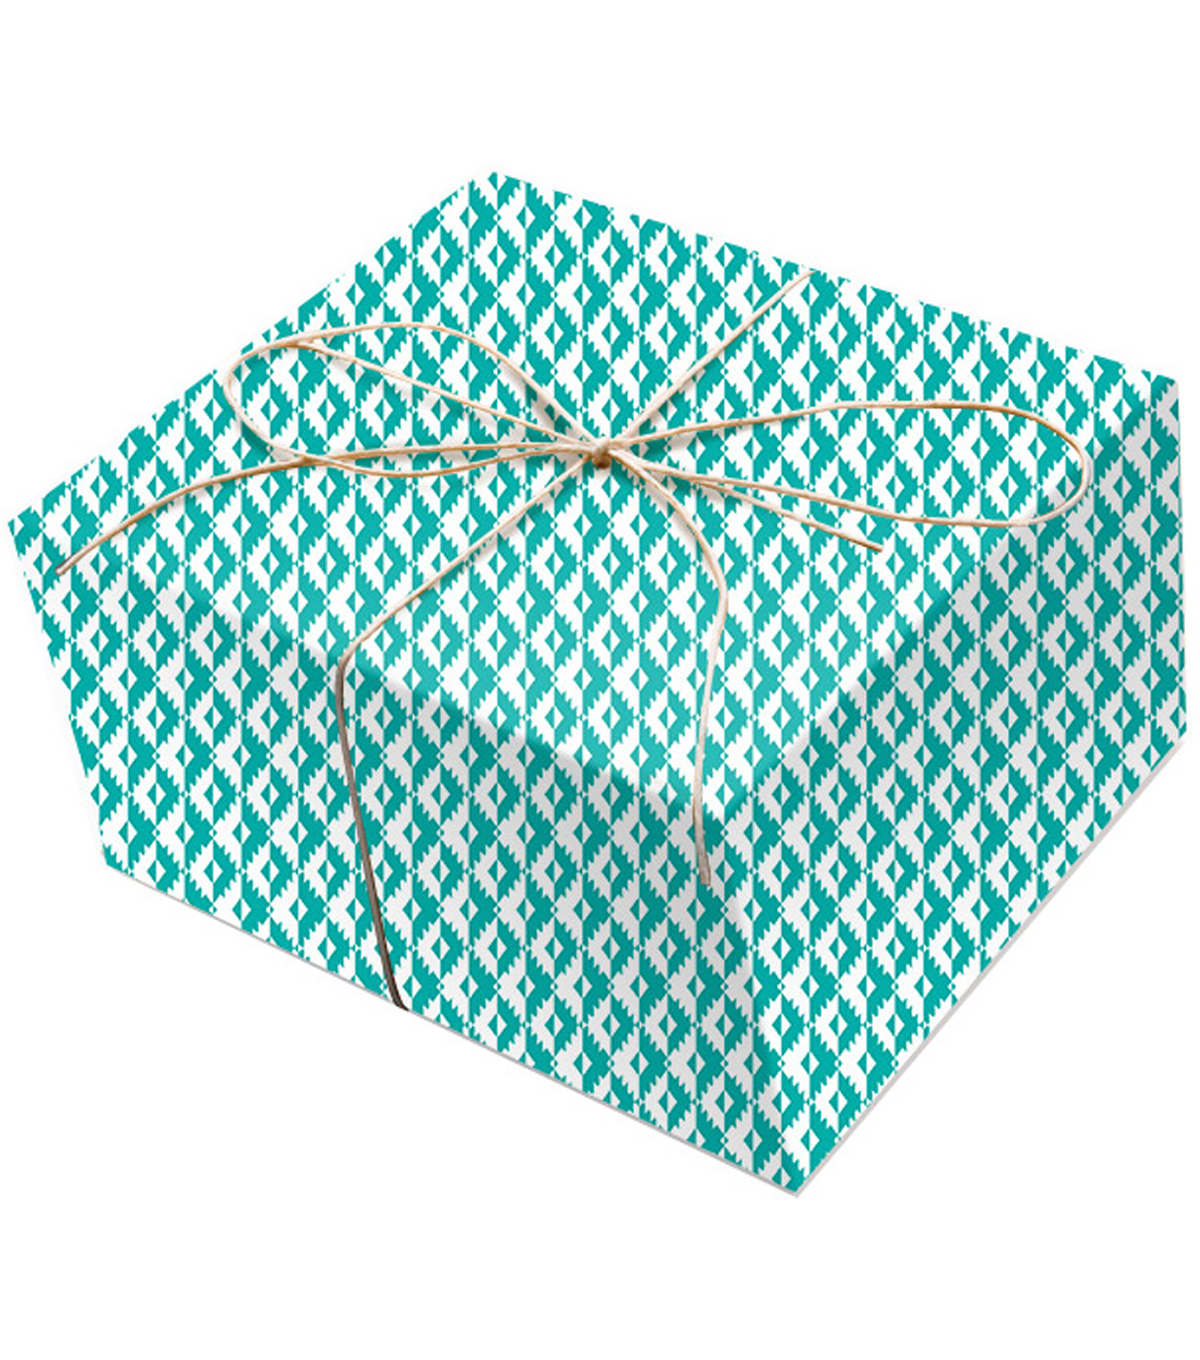 K&Company Teal Geo Paper Roll